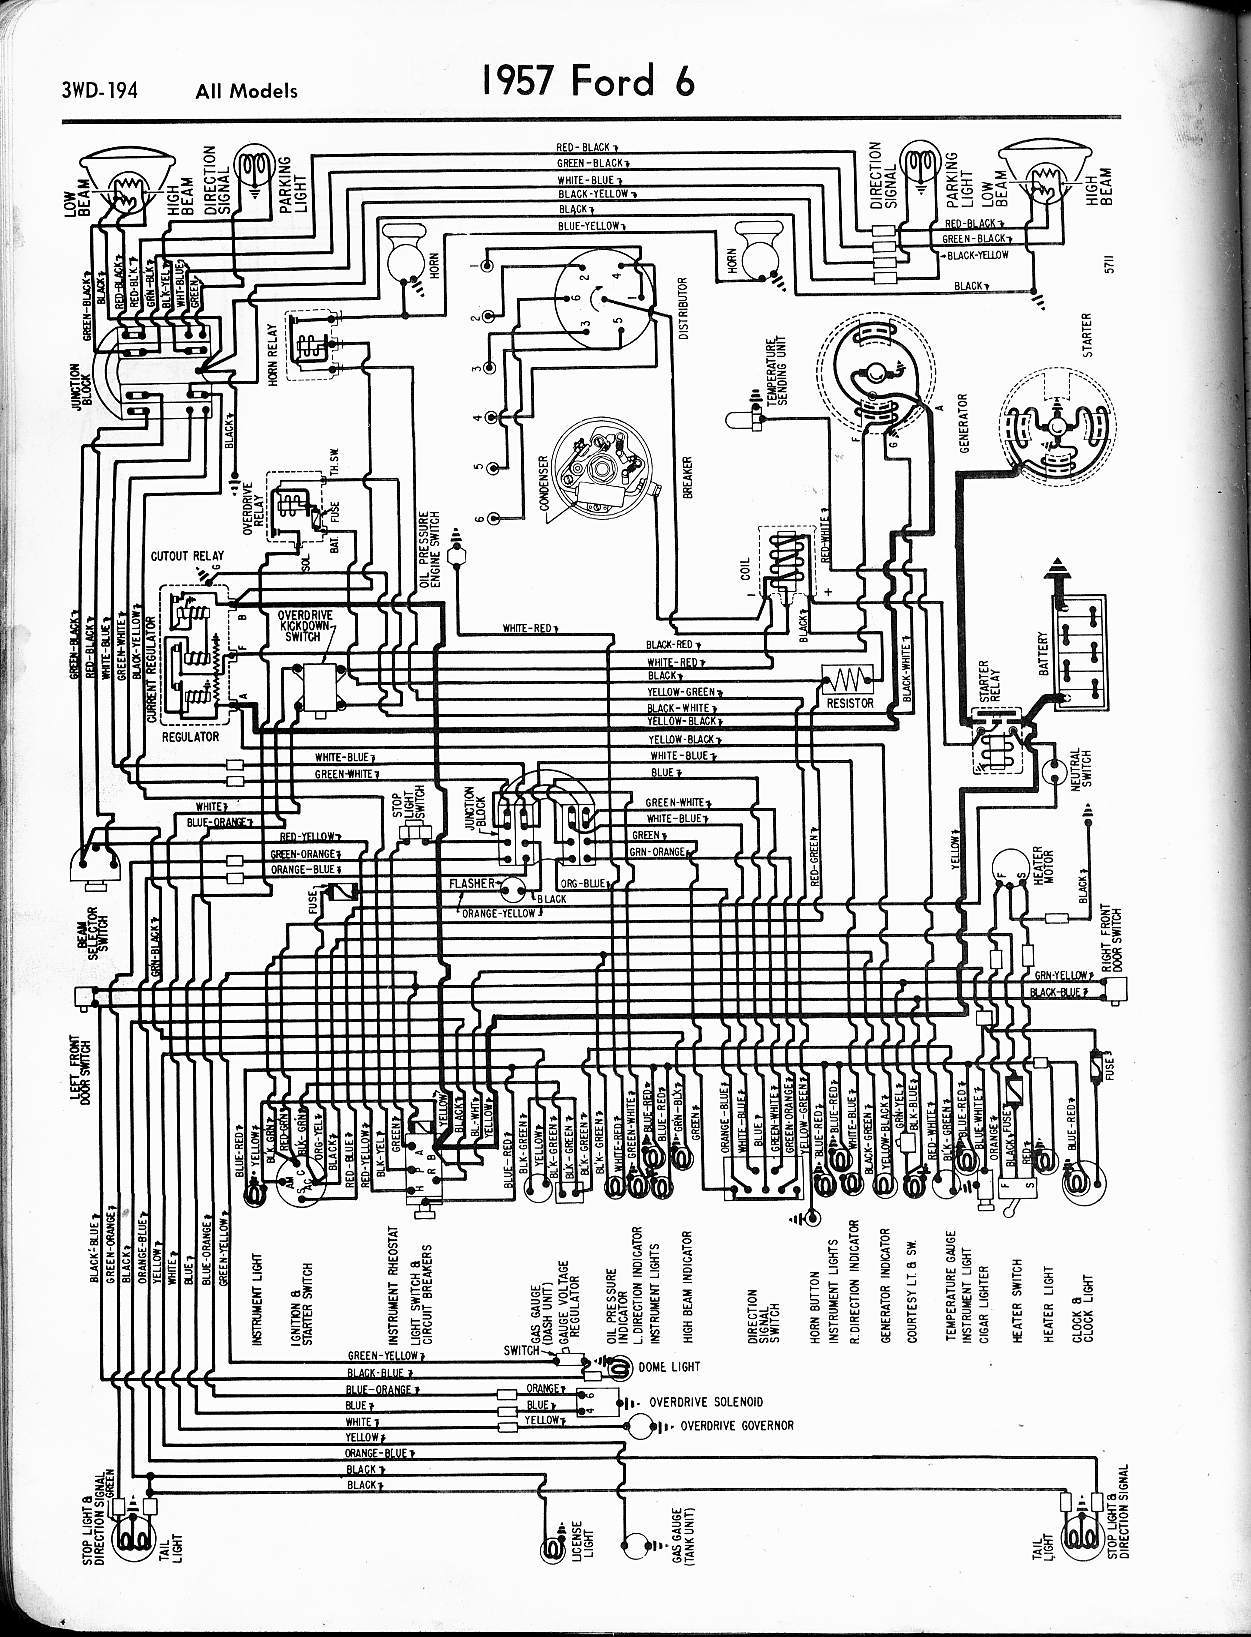 1957 Ford Truck Wiring Diagram